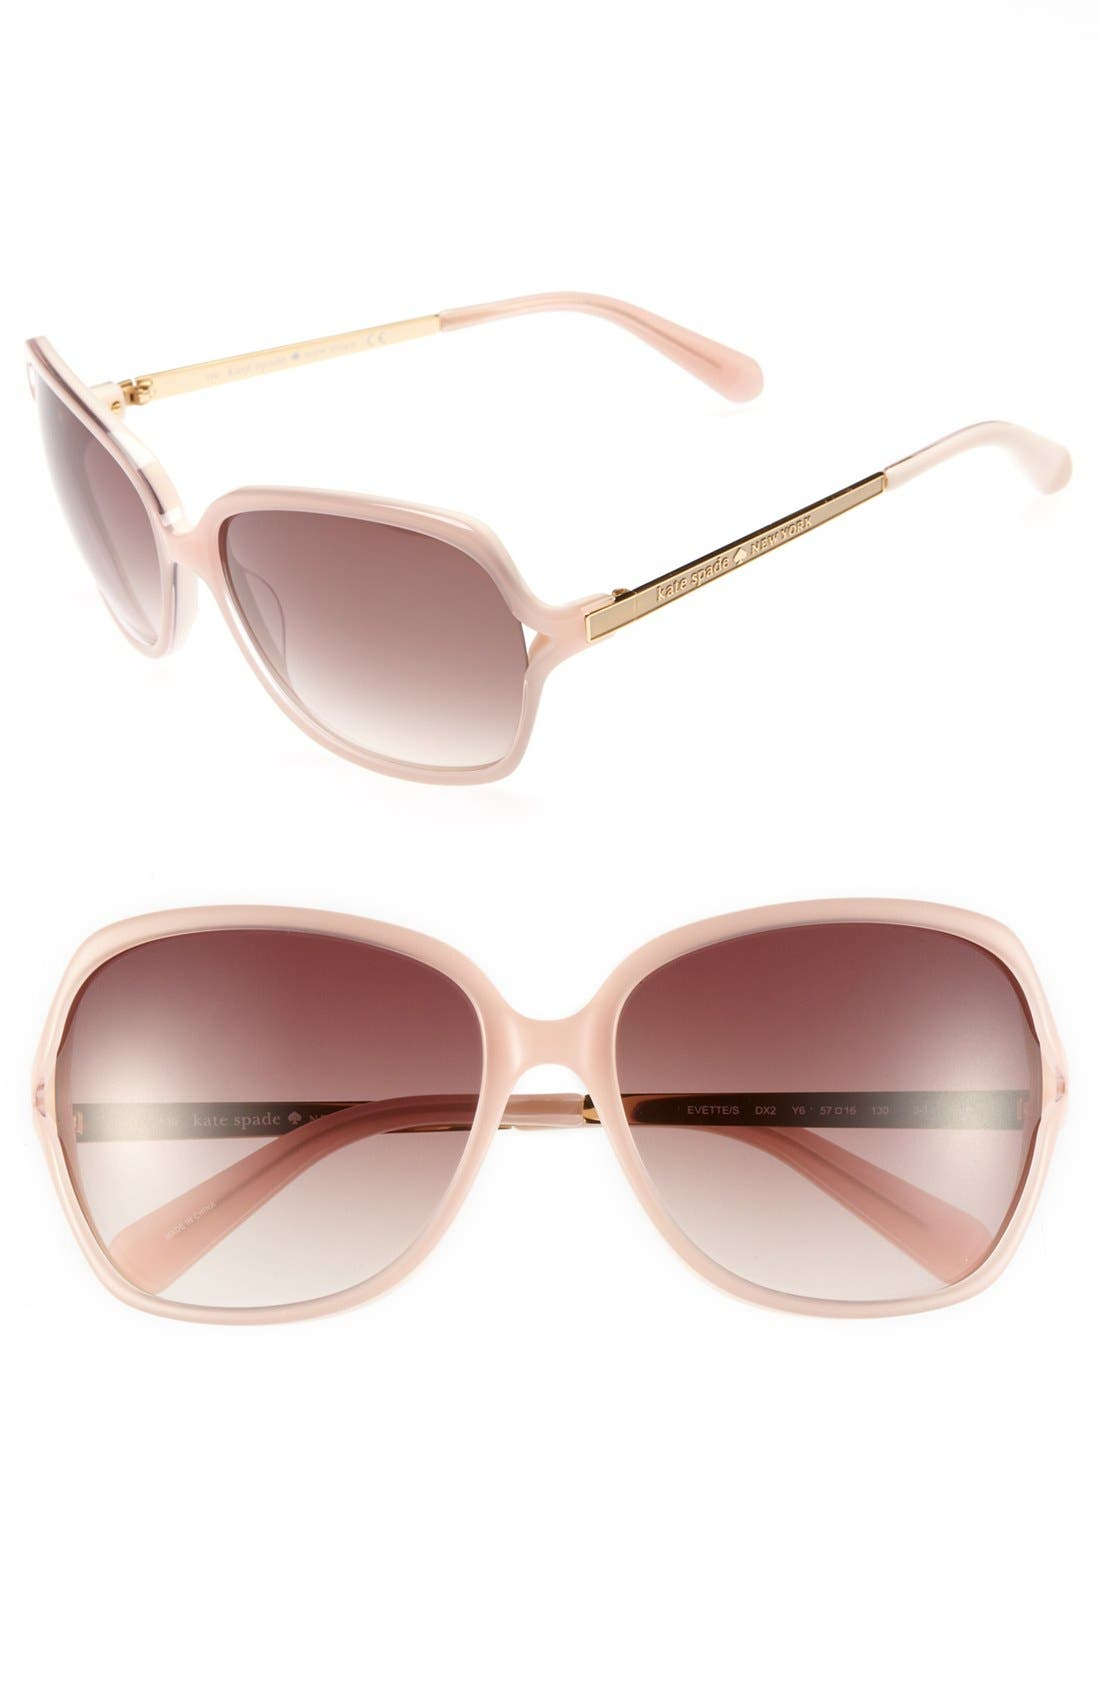 Main Image - kate spade new york 'evette' 57mm oversized sunglasses